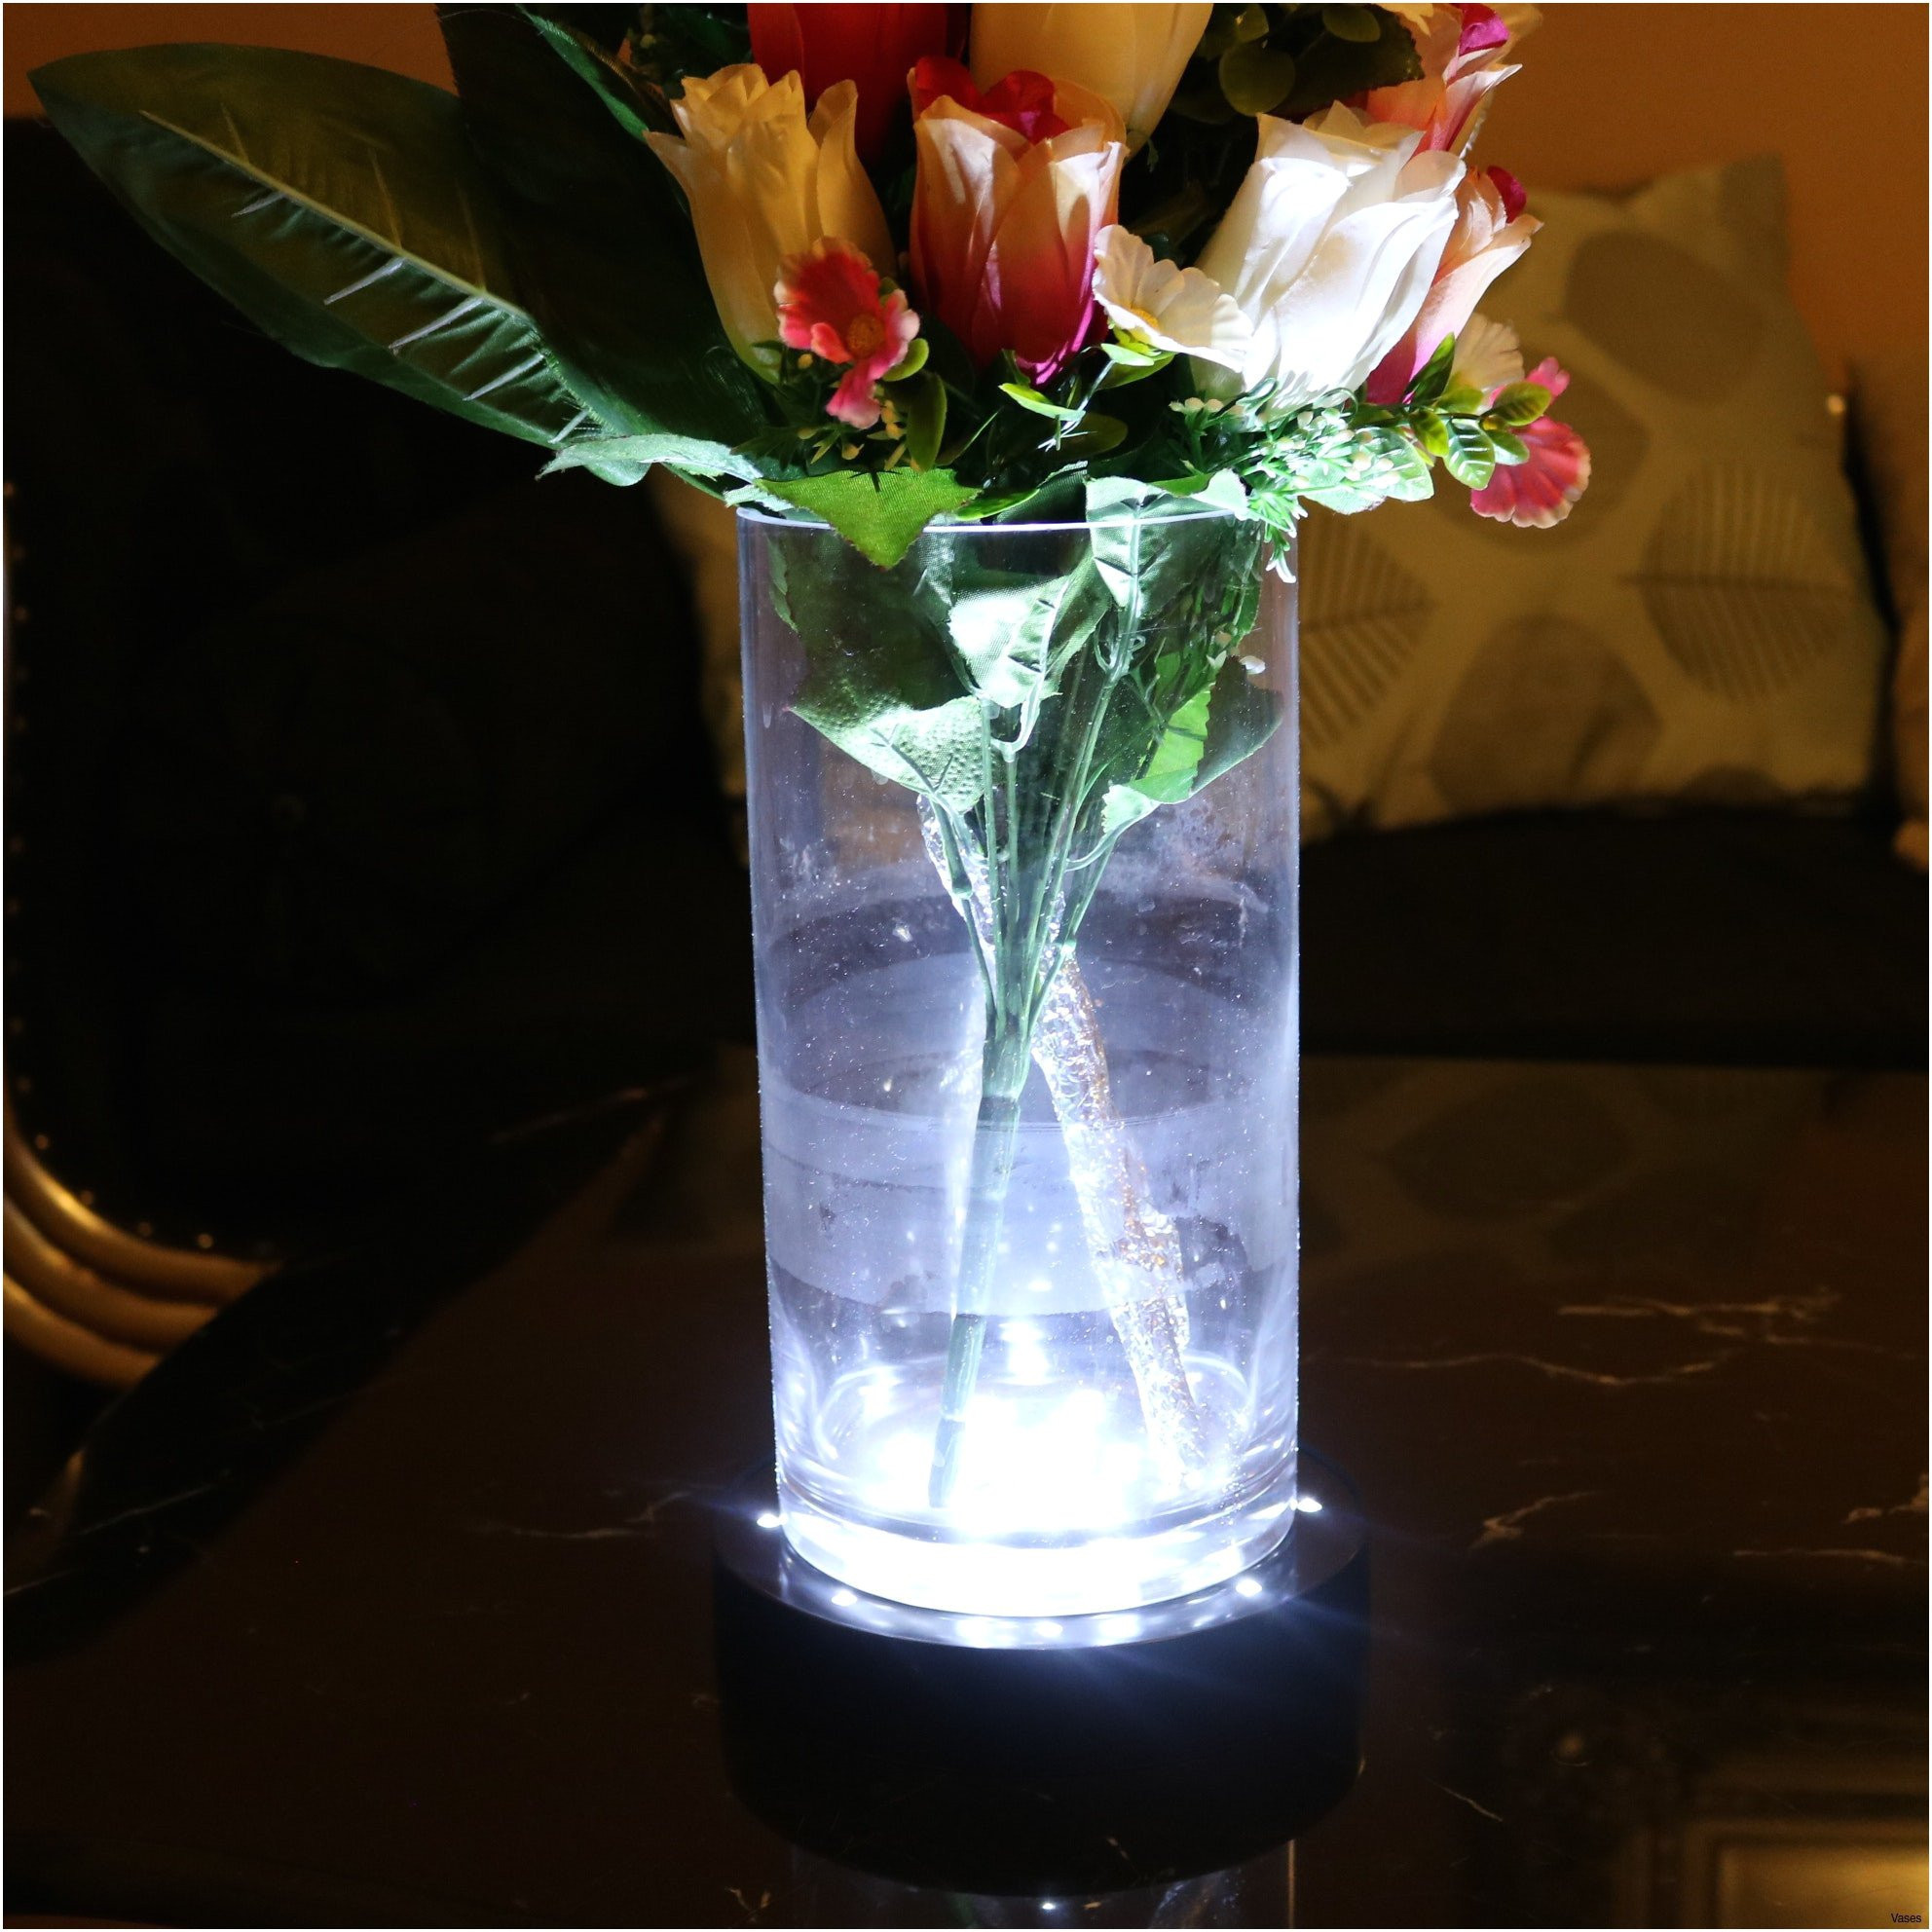 vw beetle vase ideas of stock of single flower vase vases artificial plants collection in single flower vase pics wedding flowers excellent vases disposable plastic single cheap of stock of single